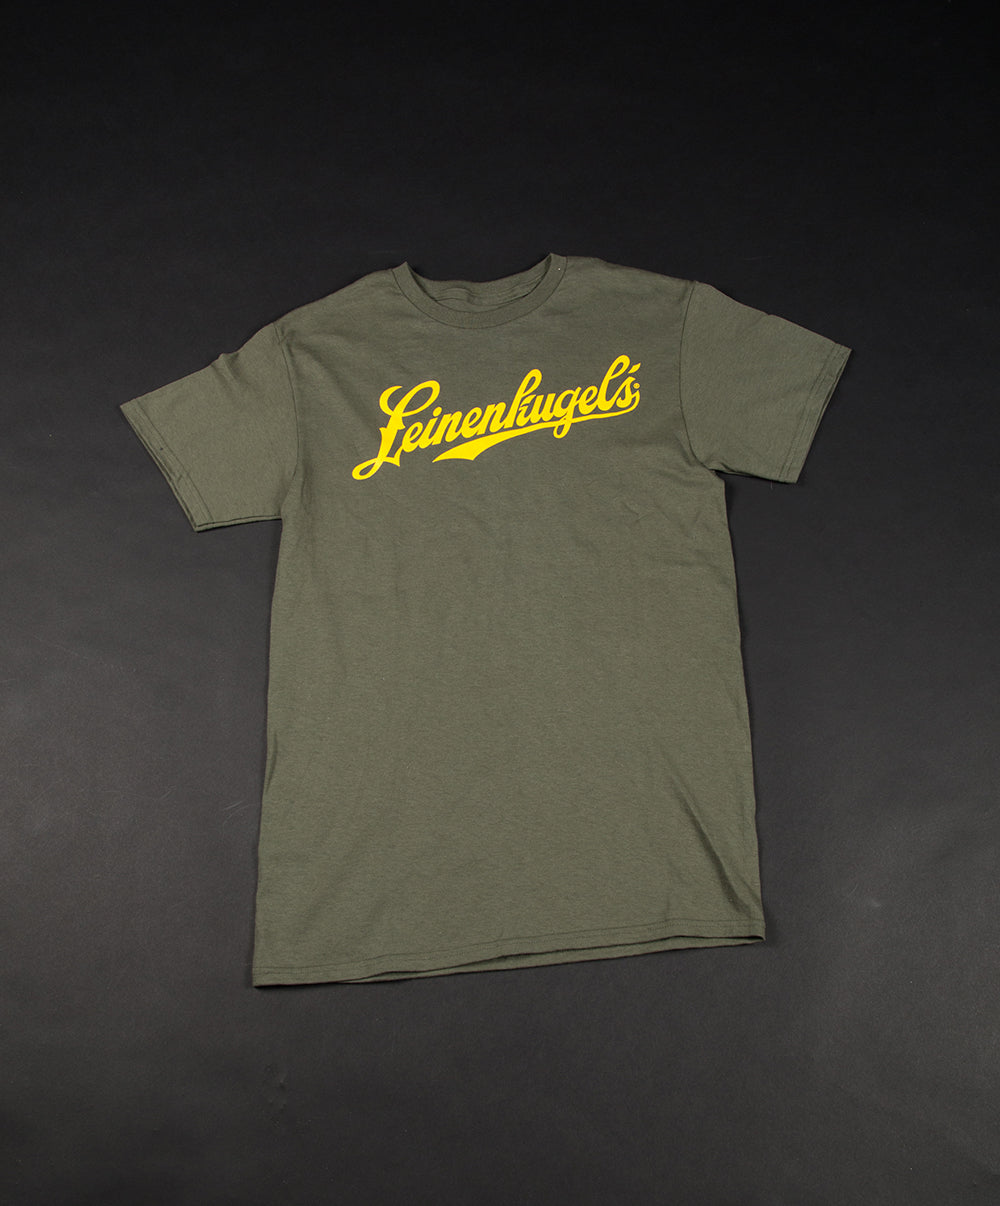 HOLIDAY LEINENKUGEL'S TEE